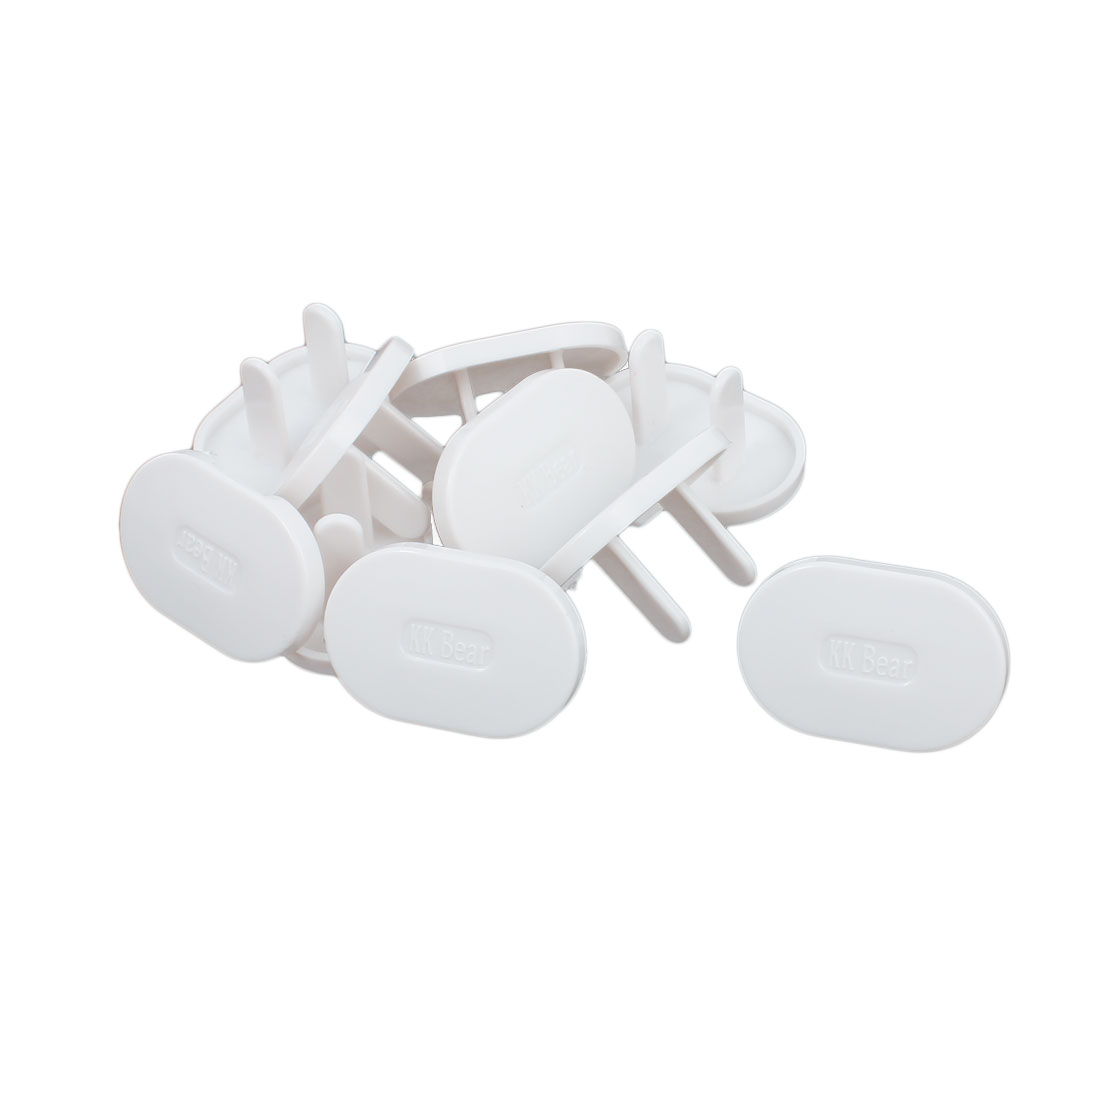 10 Pcs Plastic US Electric Outlet Safety Cover Cap Socket Protector Plug Guard White